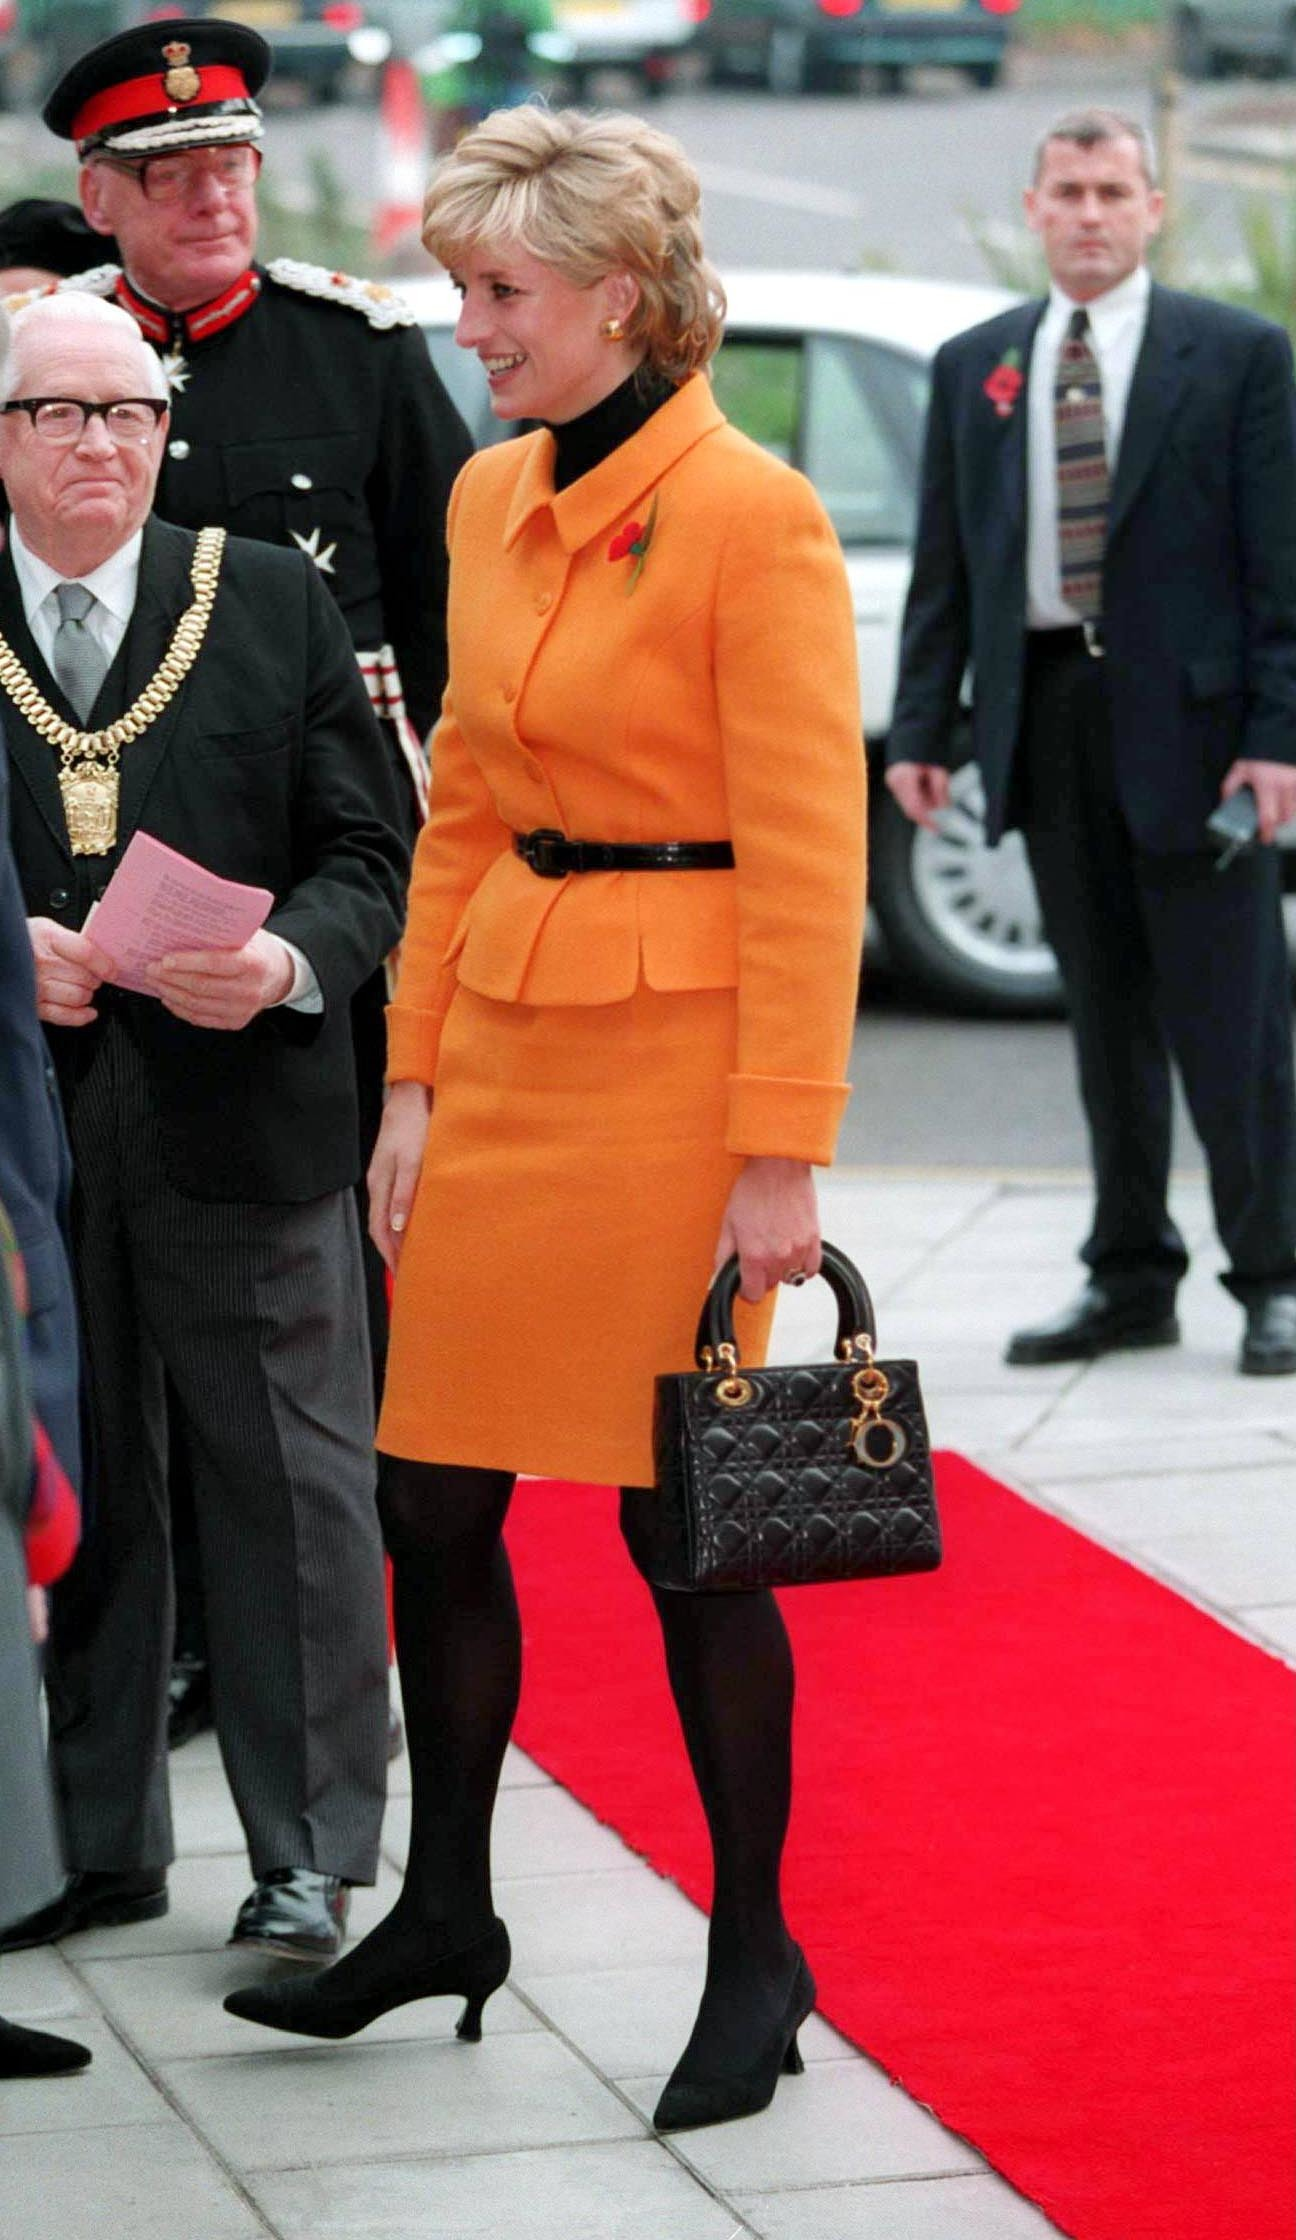 PRINCESS DIANA IN LIVERPOOL, BRITAIN - 1995  PRINCESS DIANA  ARRIVING TO OPEN THE LIVERPOOL WOMENS HOSPITAL PRINCESS DIANA IN LIVERPOOL, BRITAIN - 1995  BRITISH ORANGE SUIT, Image: 221342063, License: Rights-managed, Restrictions: , Model Release: no, Credit line: Tim Rooke / Shutterstock Editorial / Profimedia